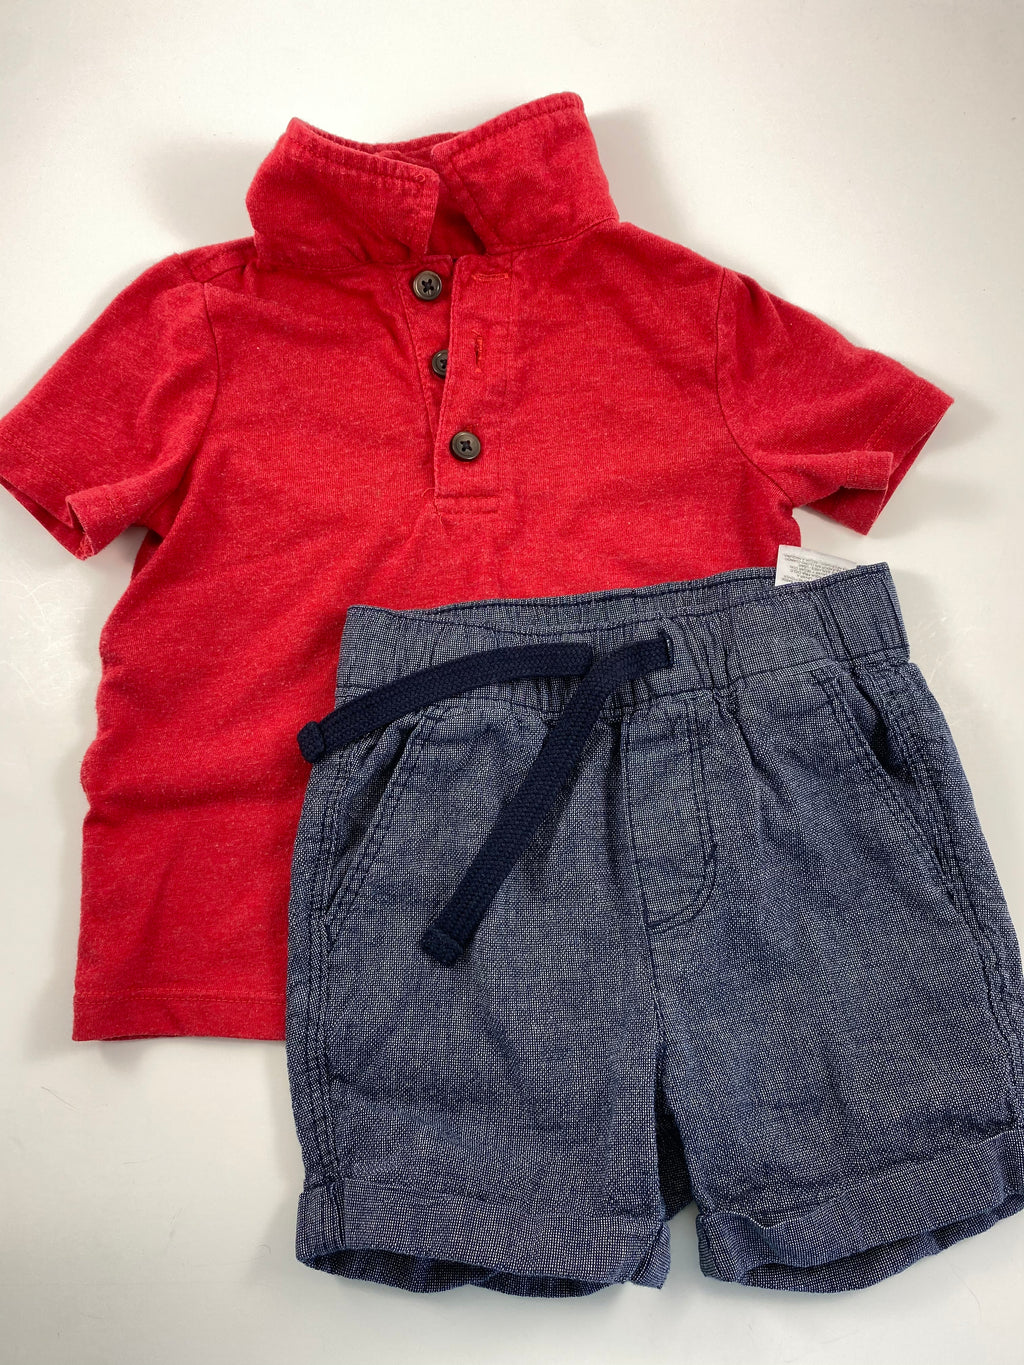 Boy's Short Sleeve Outfit - Size 12-18mo